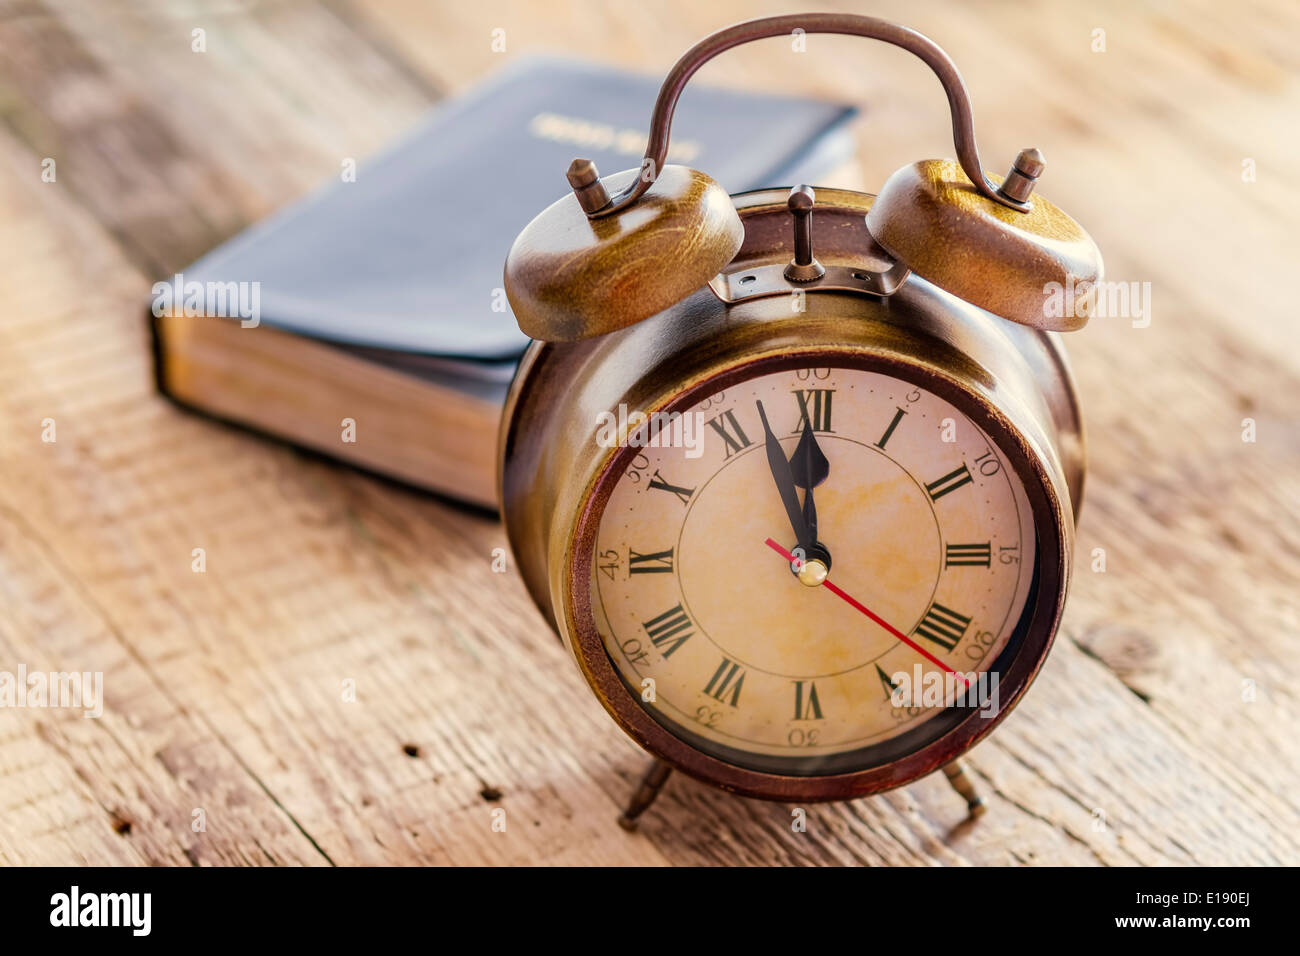 Clock and Bible on wood. Concept of clock showing a few minutes to twelve o'clock. Focus on the clock. - Stock Image